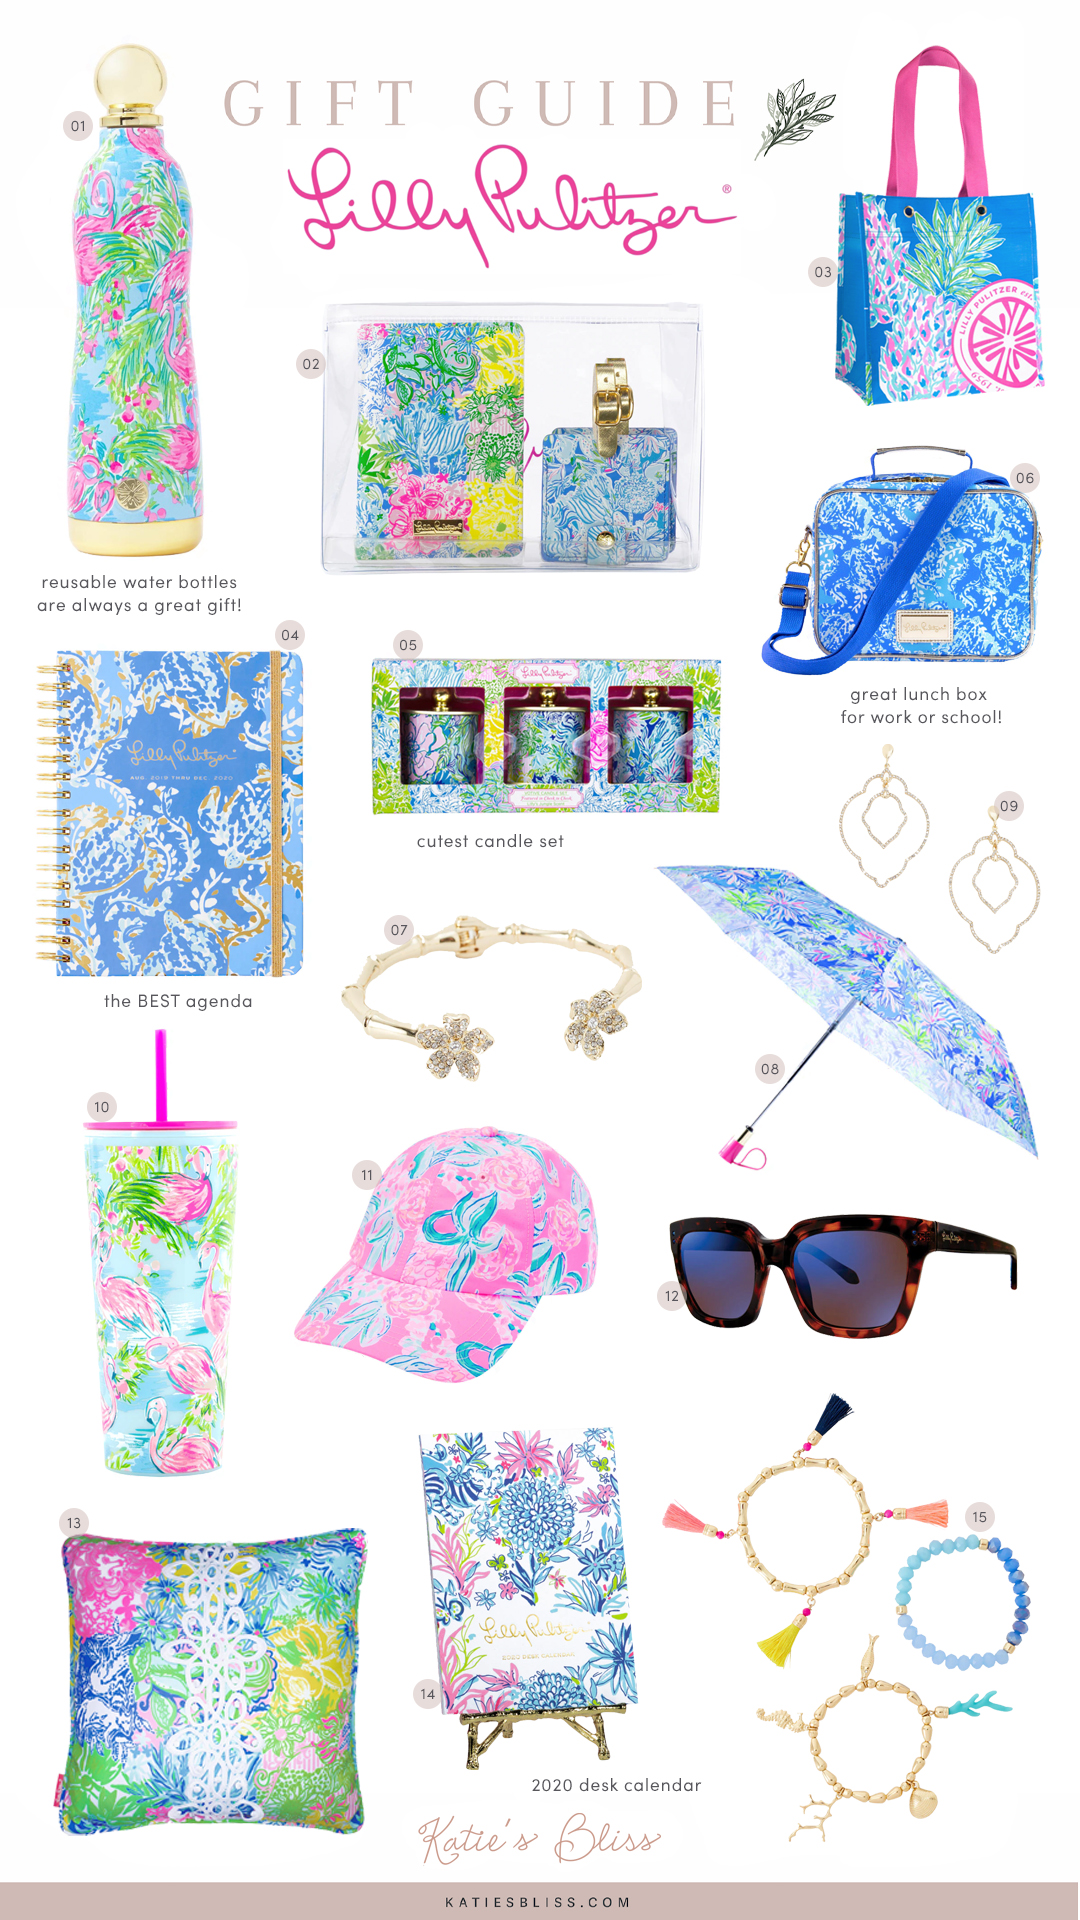 Lilly Pulitzer Holiday Gift Guide 2019